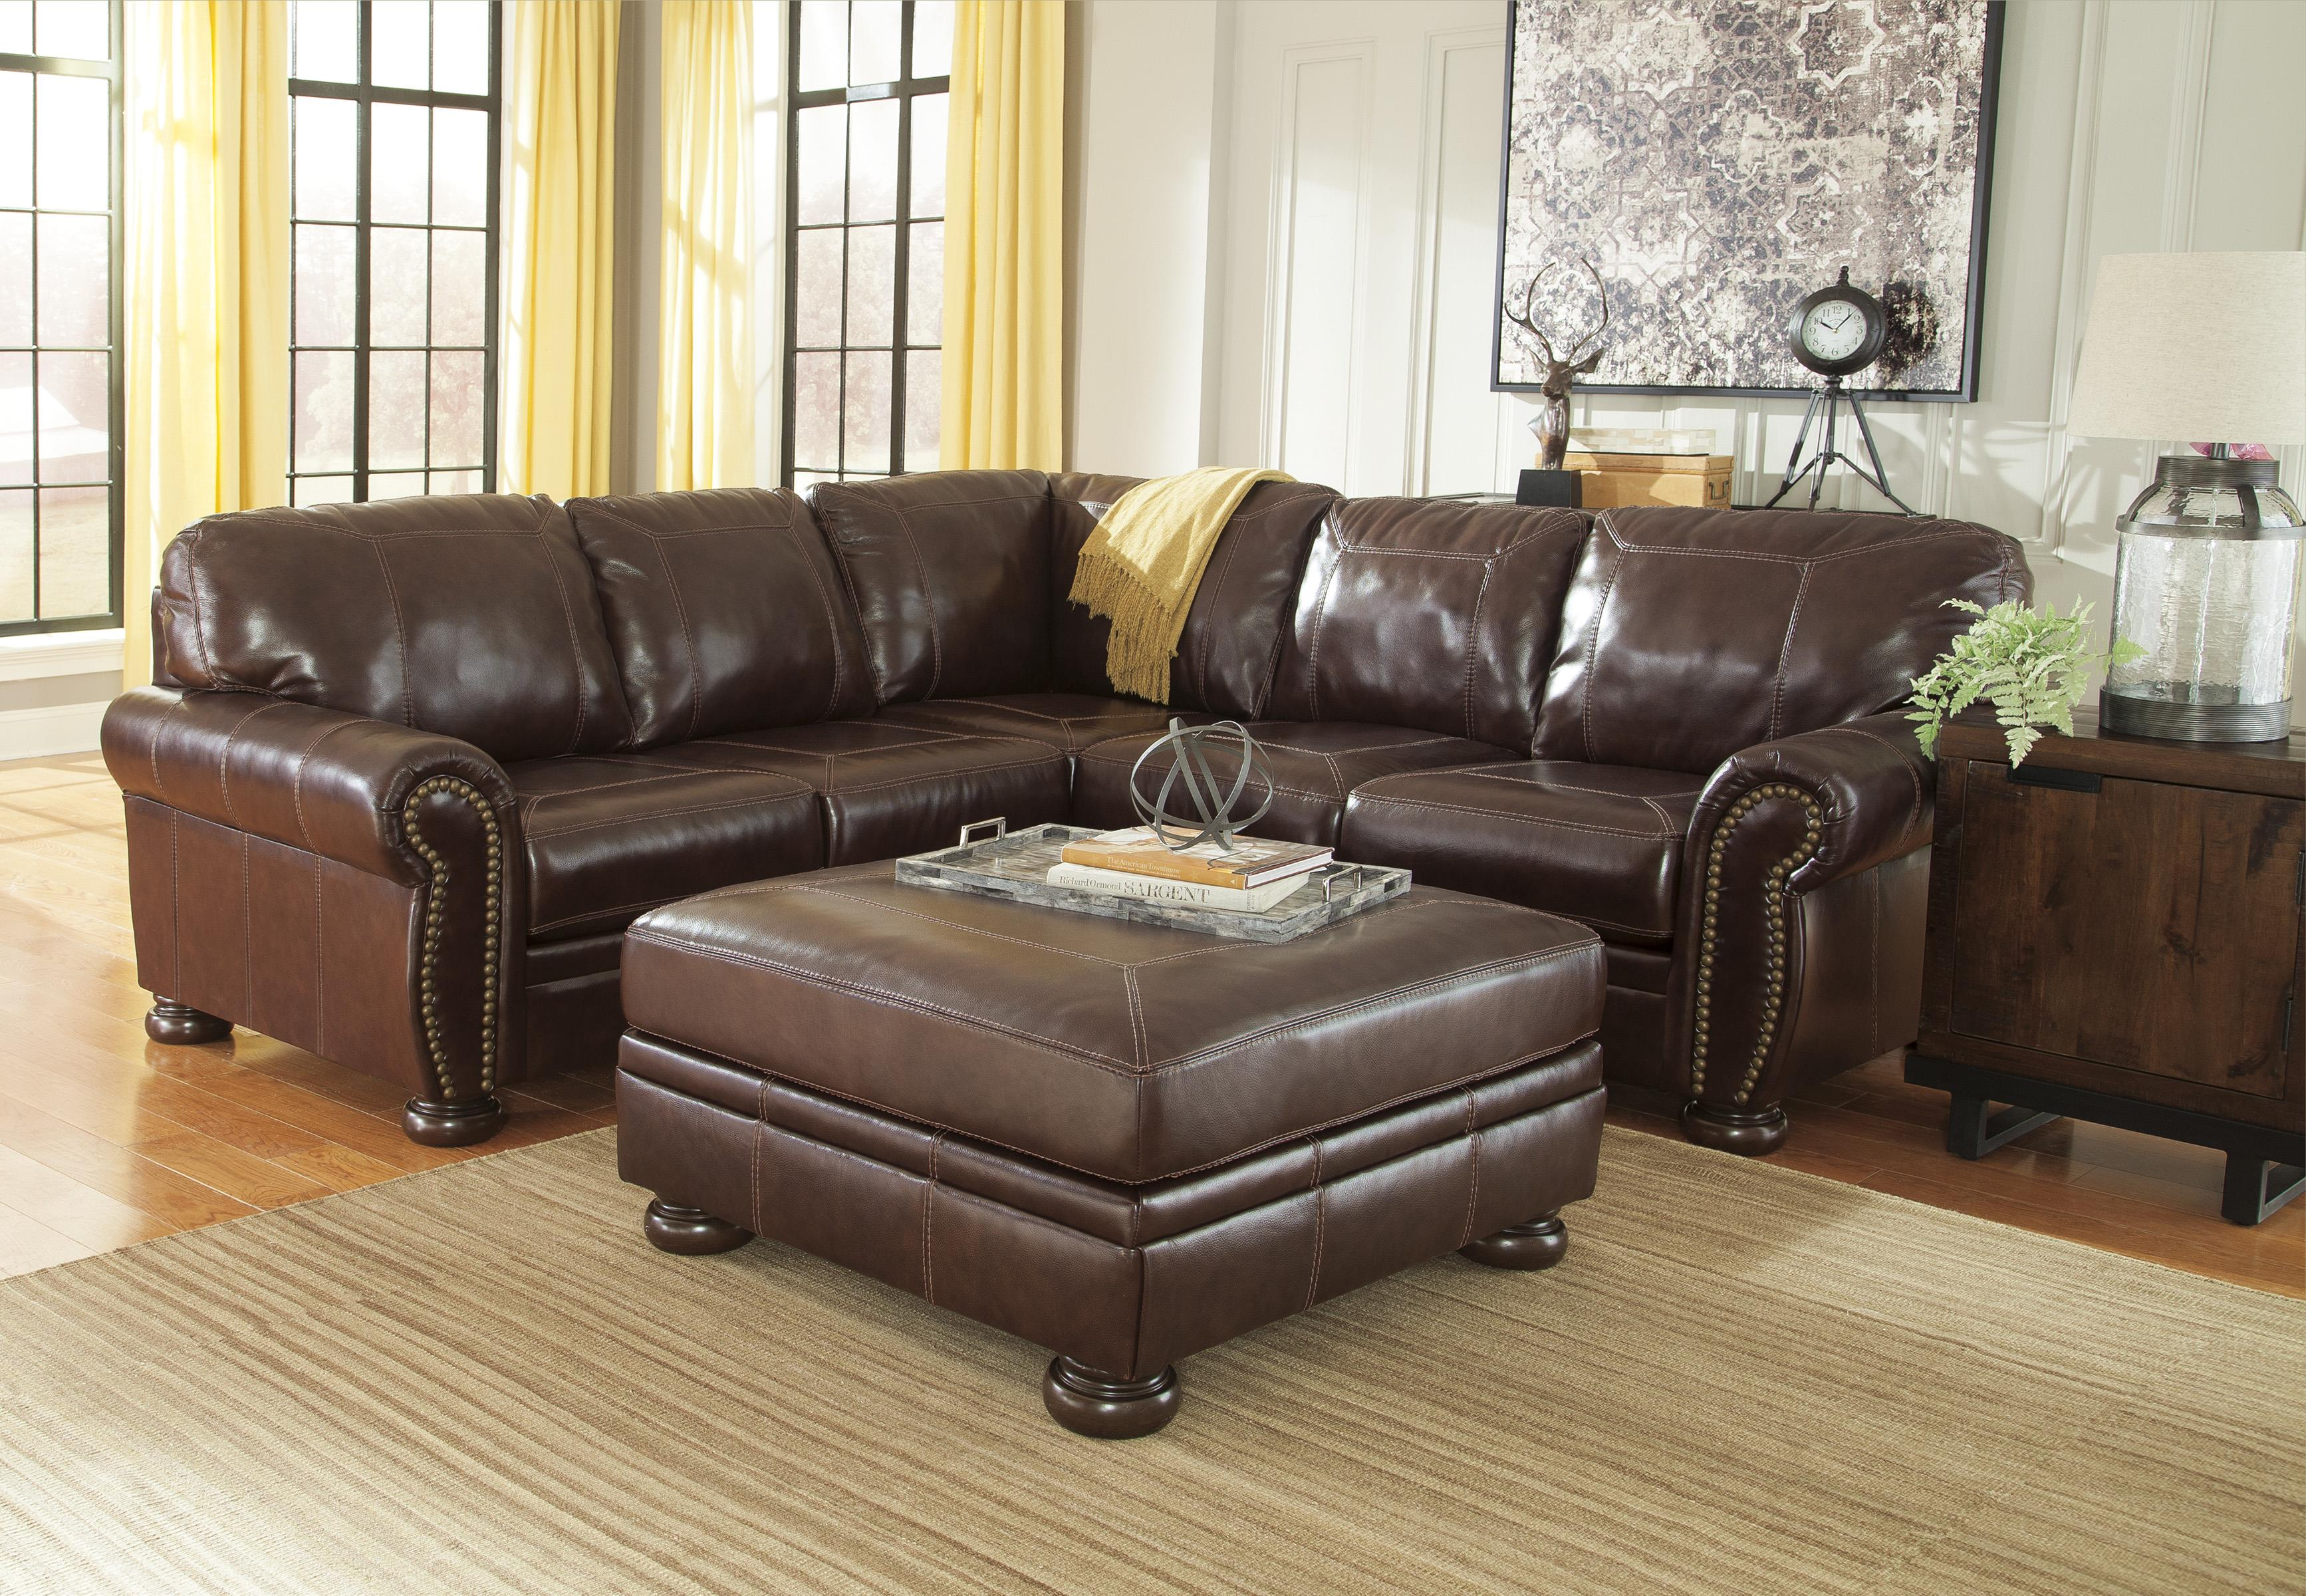 Signature Design By Ashley Banner 5040408 Square Leather Match Oversized Accent Ottoman With Bun